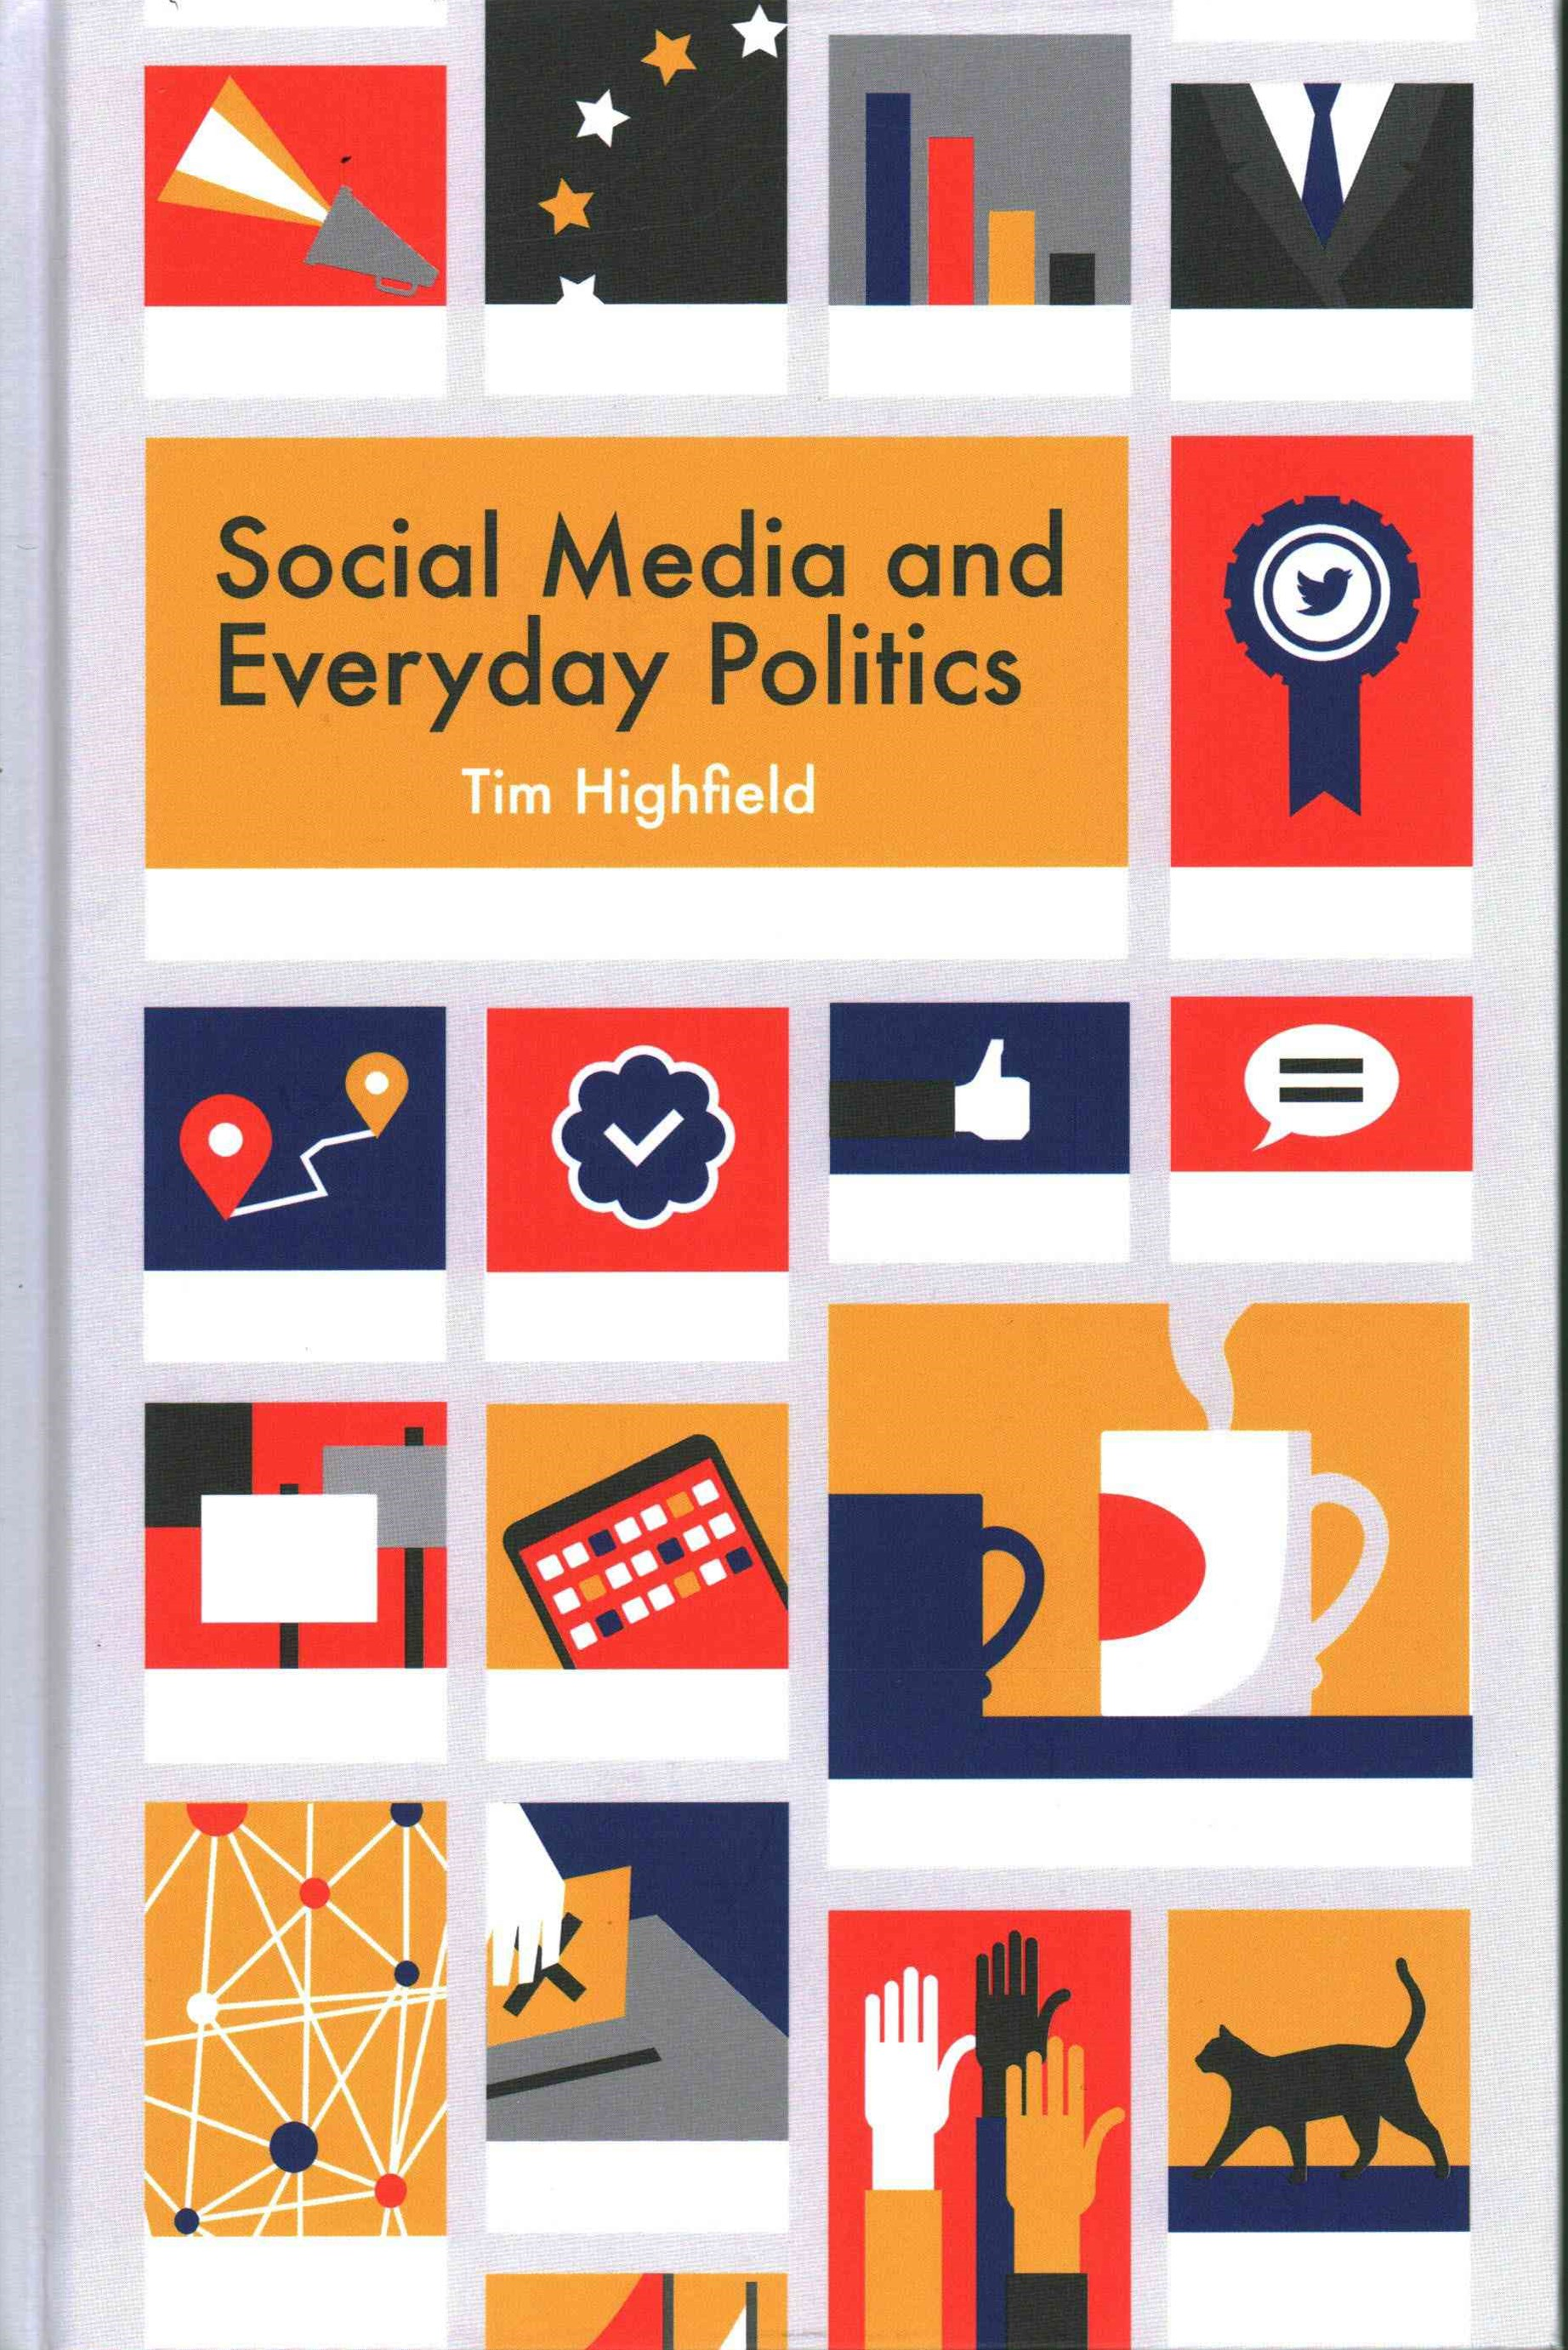 Social Media and Everyday Politics